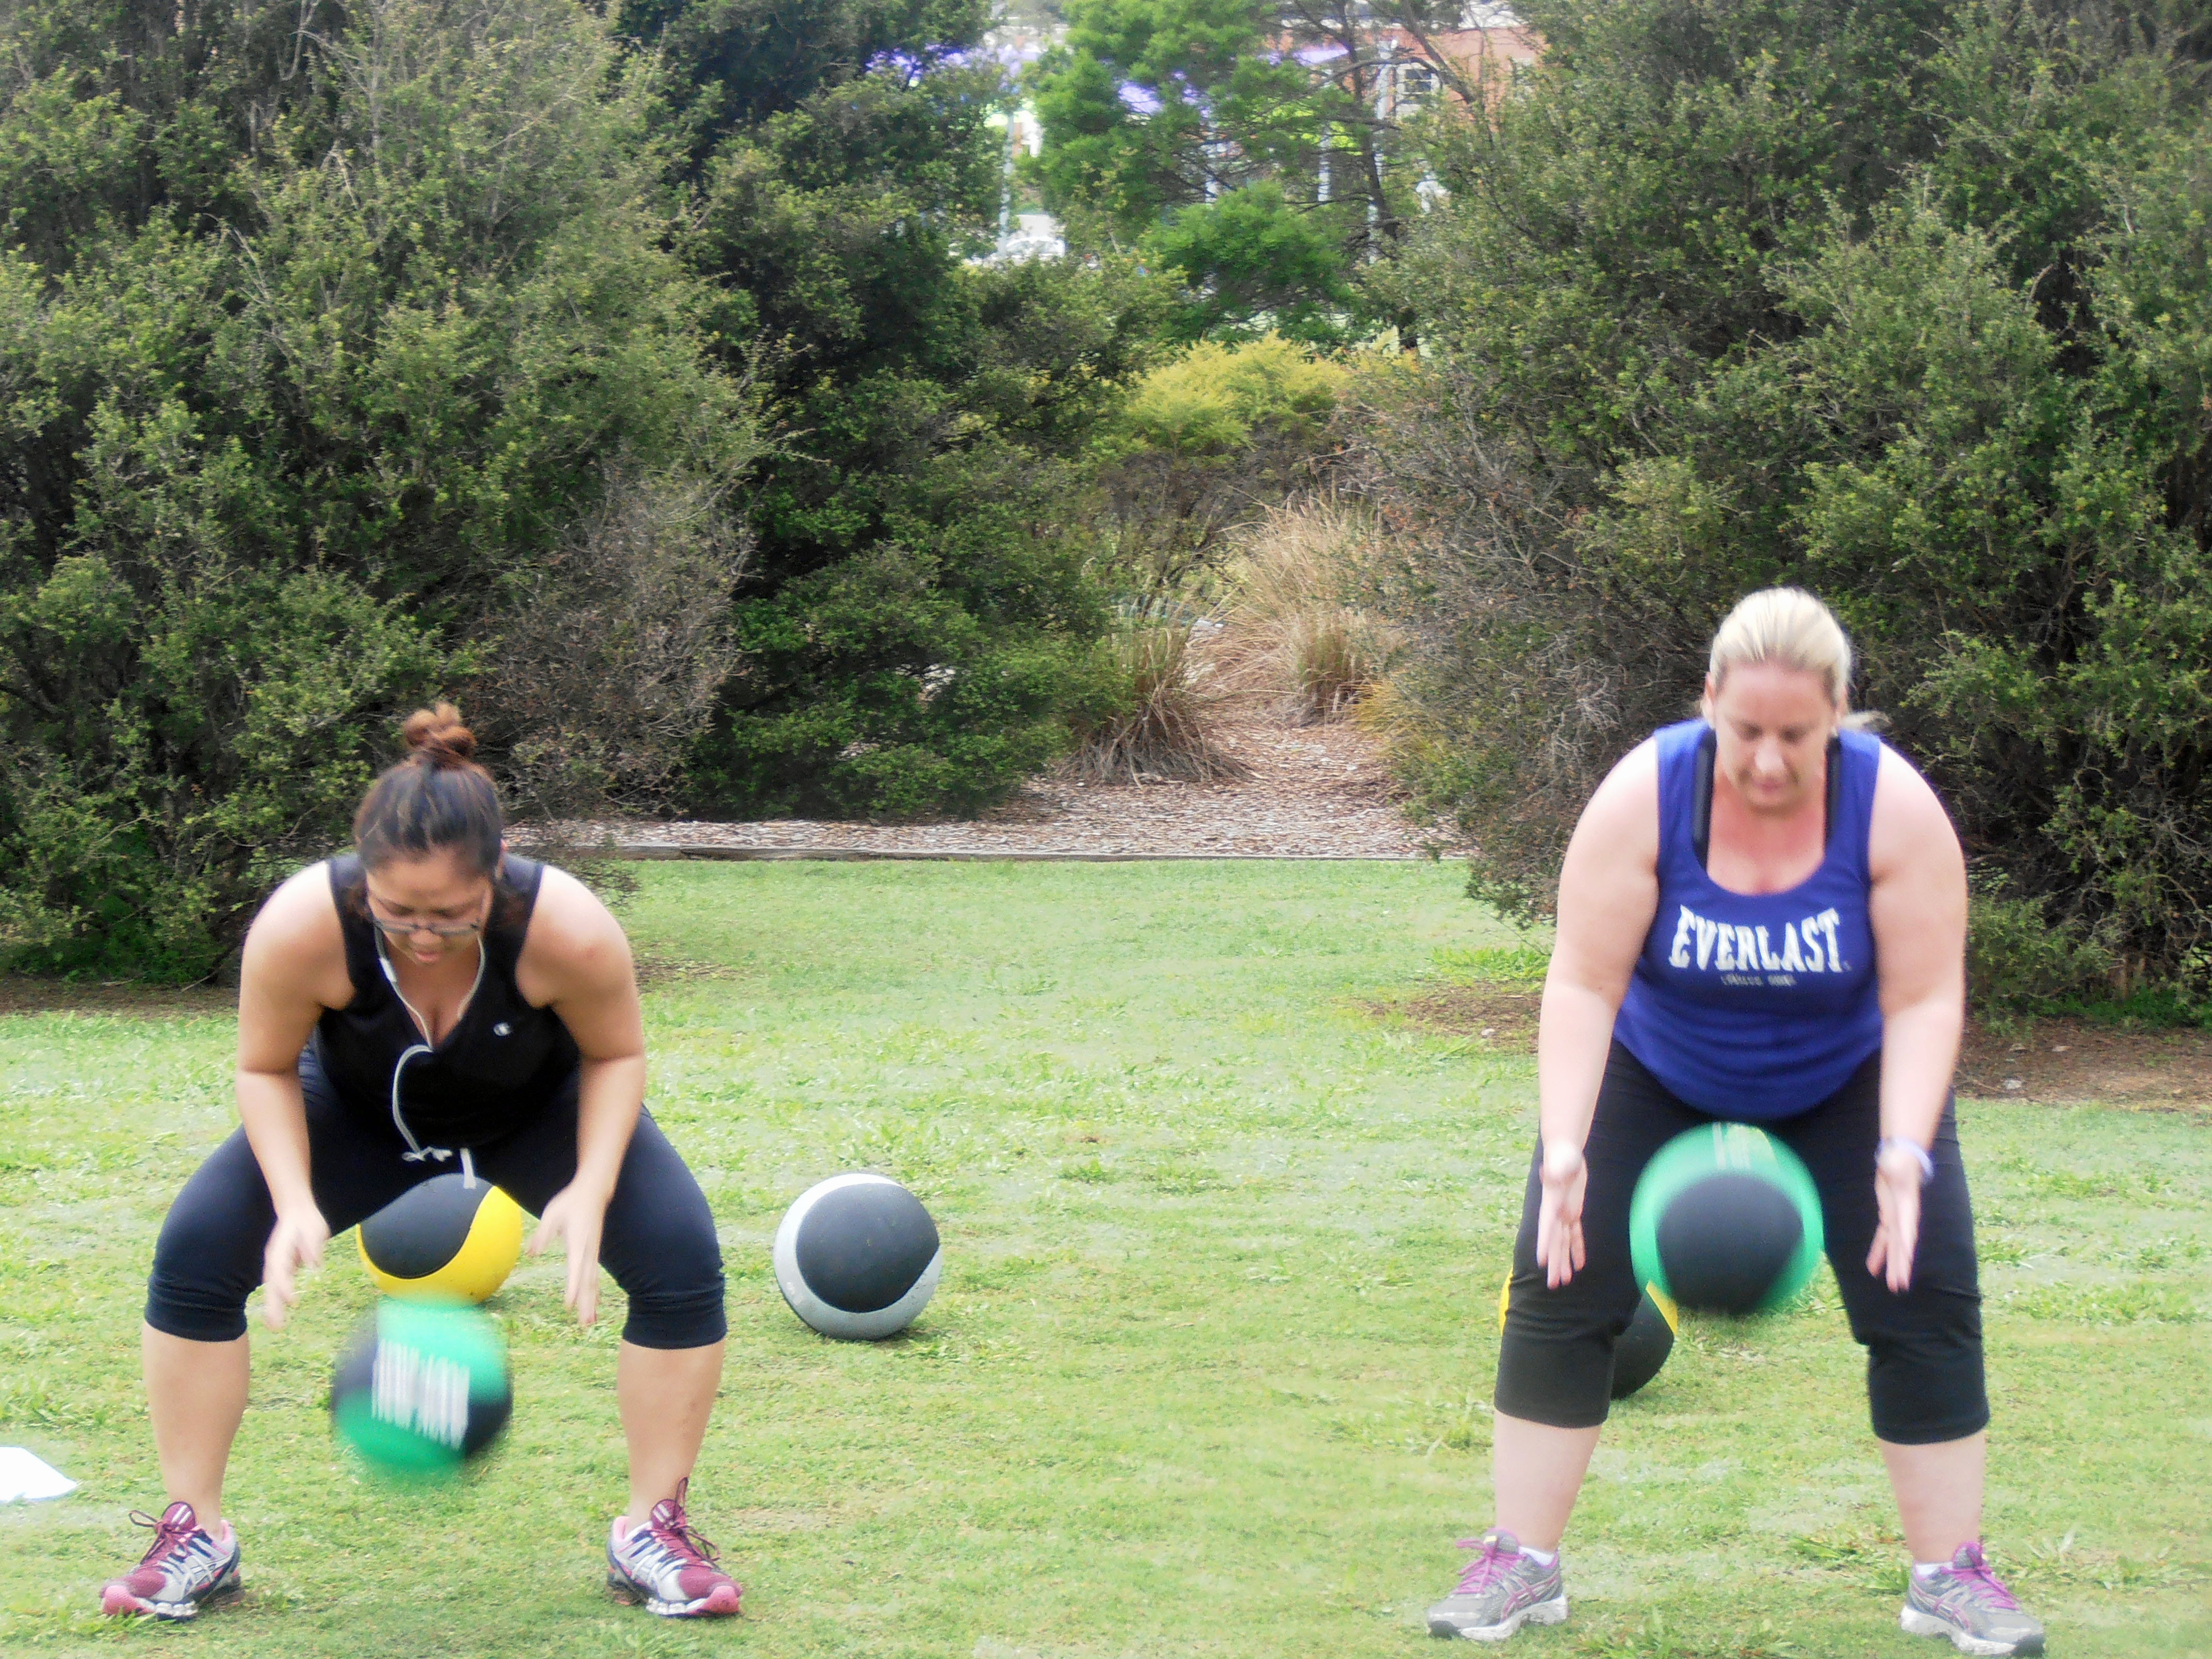 Outdoor Group Fitness Training - Active in Parks